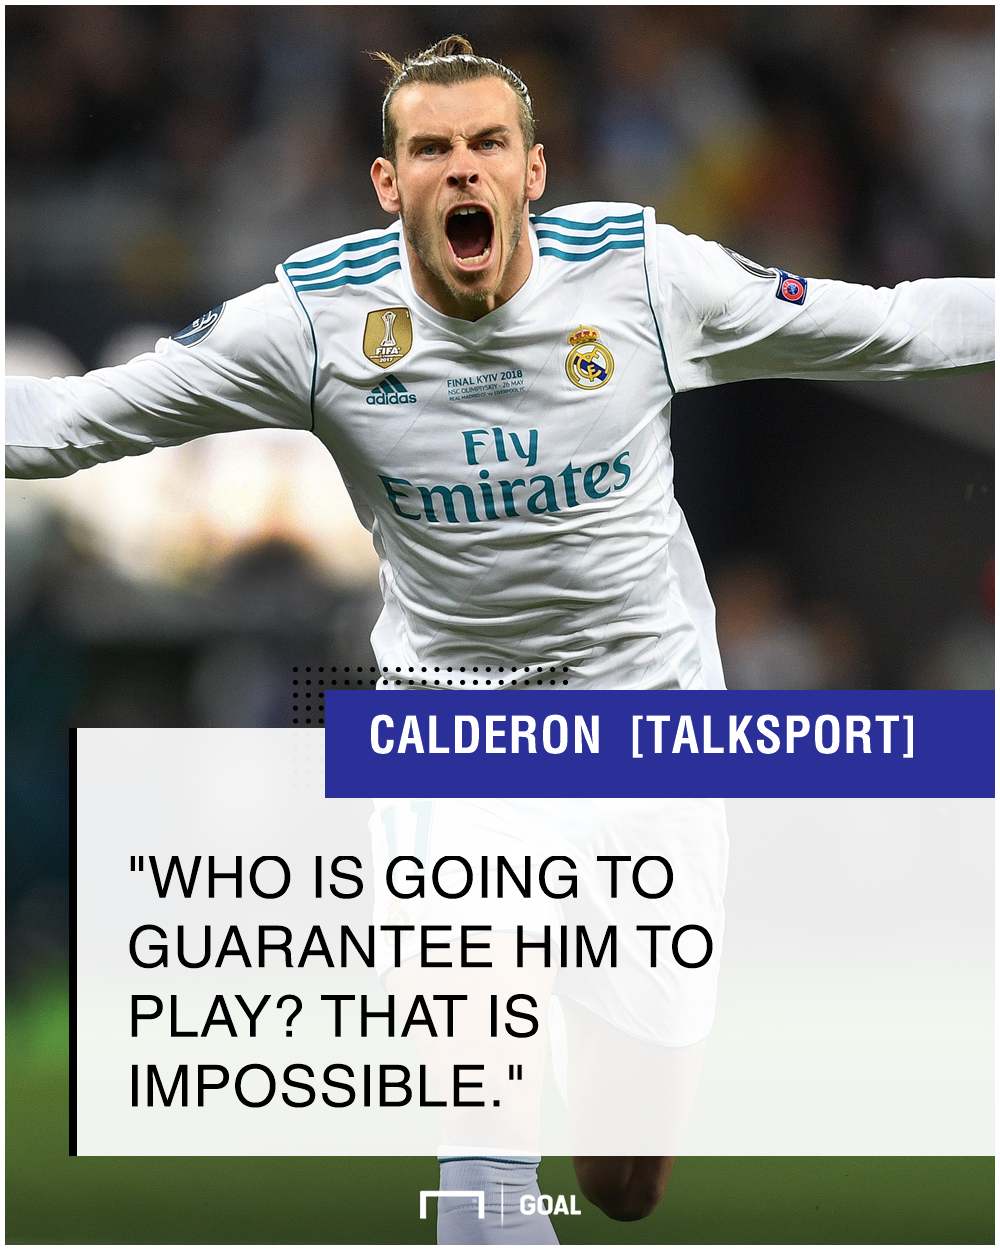 Gareth Bale Real Madrid can't guarantee games Ramon Calderon